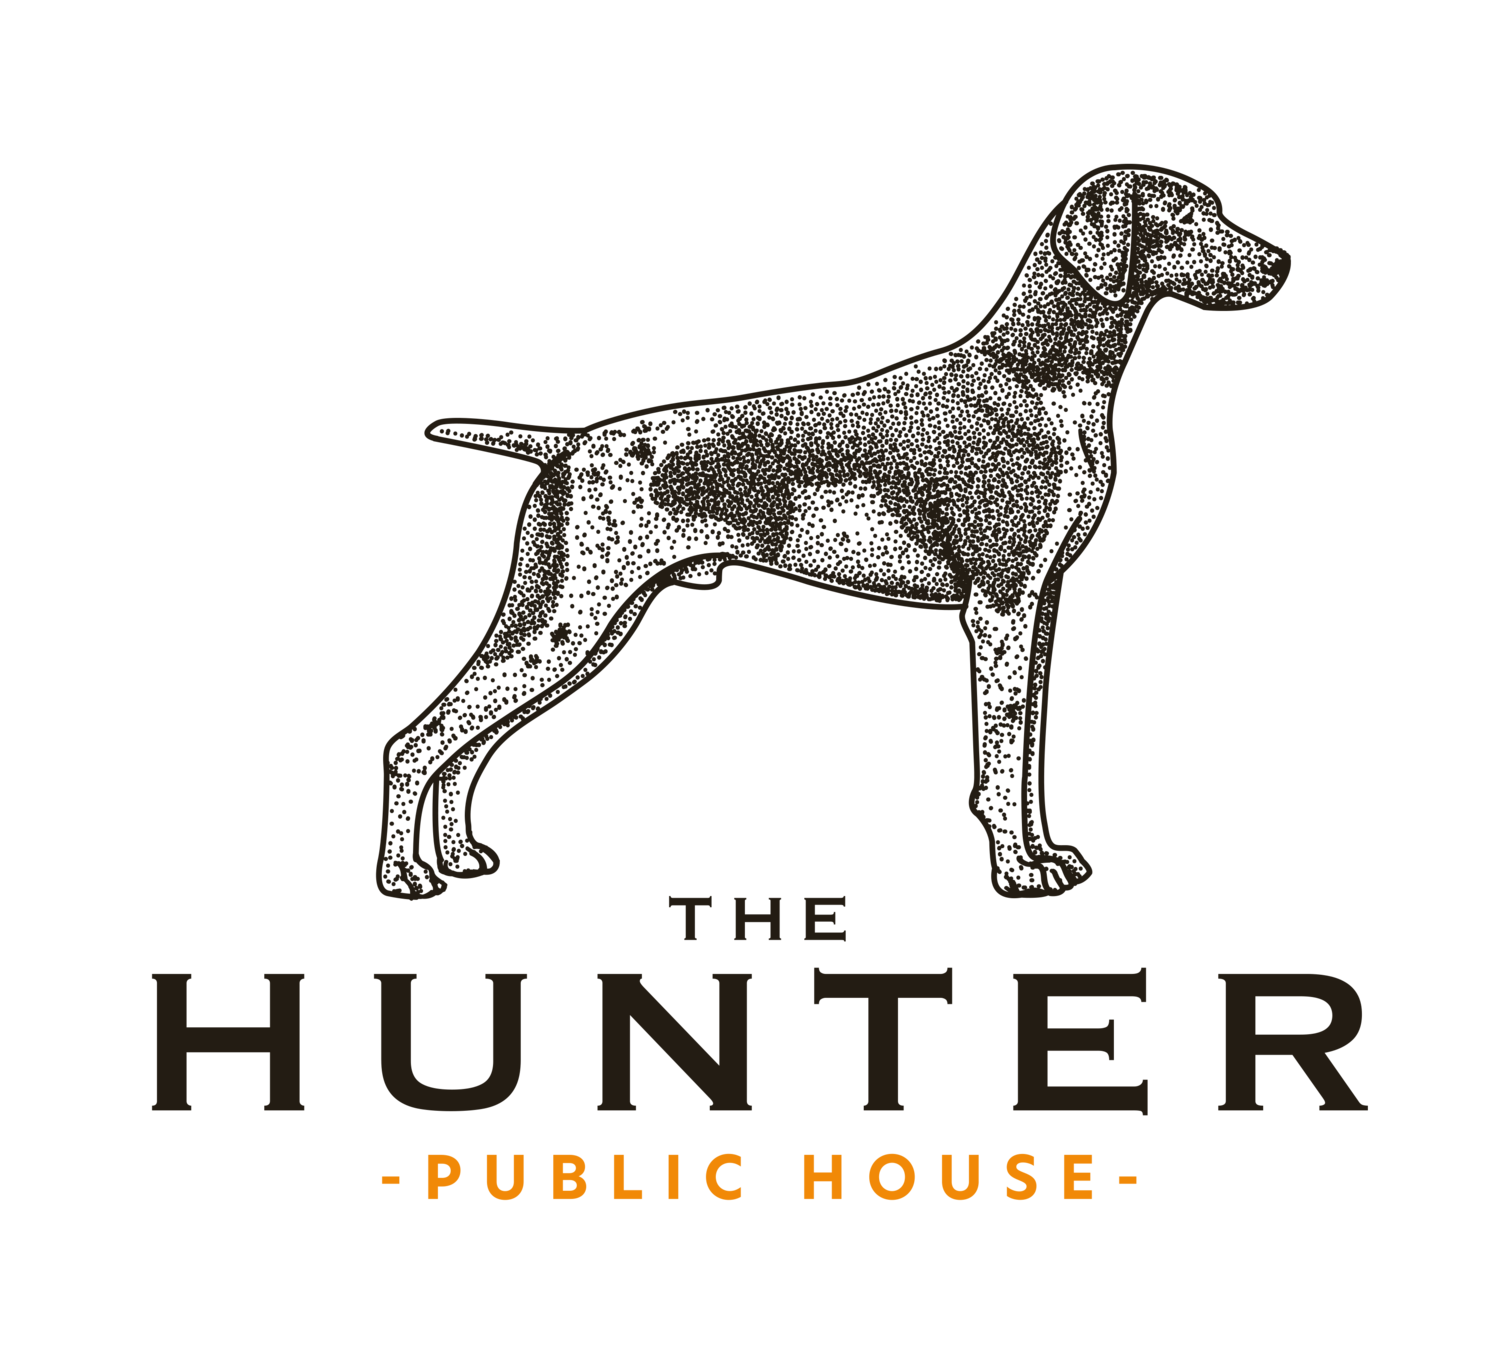 The Hunter Public House